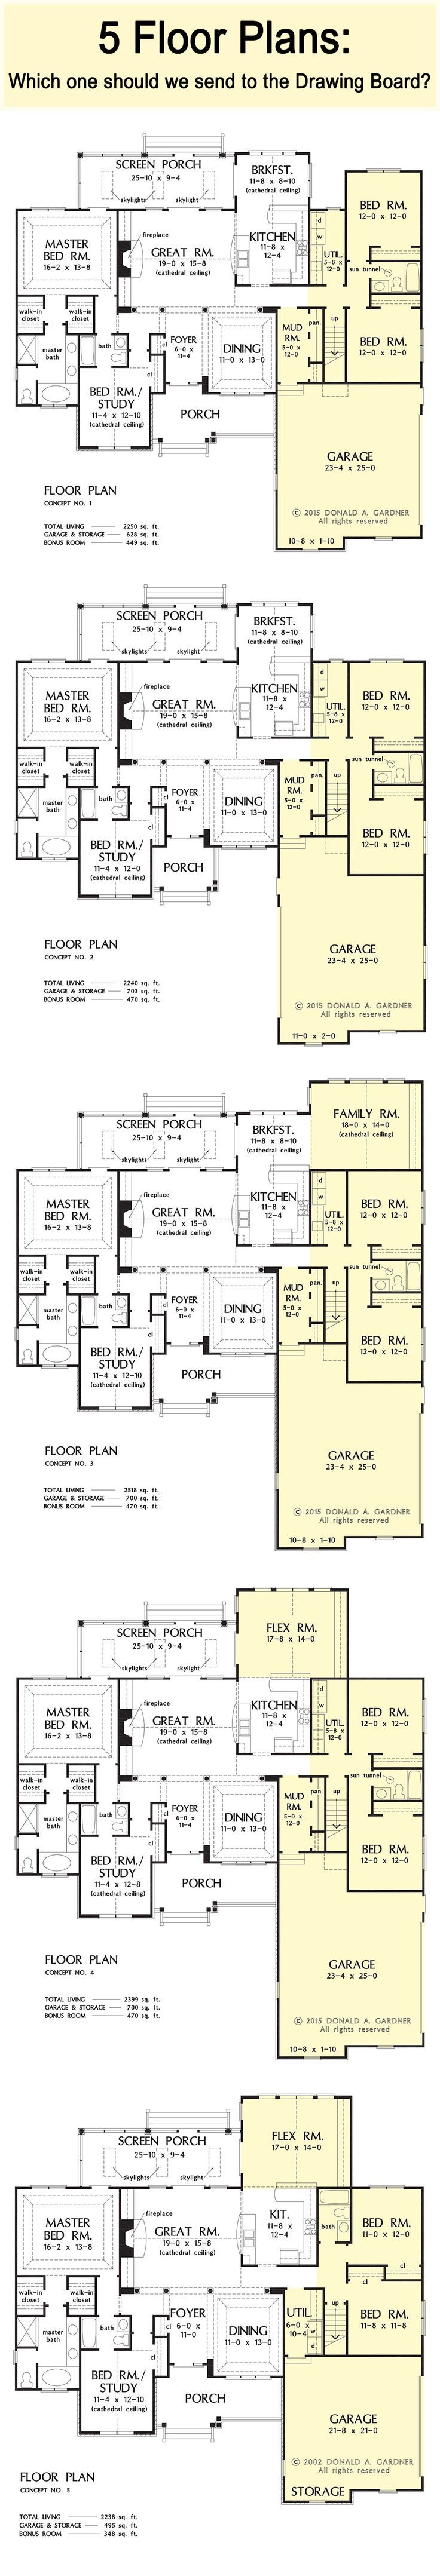 Which of these floor plan concepts should we send to the Drawing Board? Click the image below to be taken to our #House #Plans #Blog, where you can read more about each concept! http://houseplansblog.dongardner.com/share-your-feedback-on-these-floor-plan-concepts/: